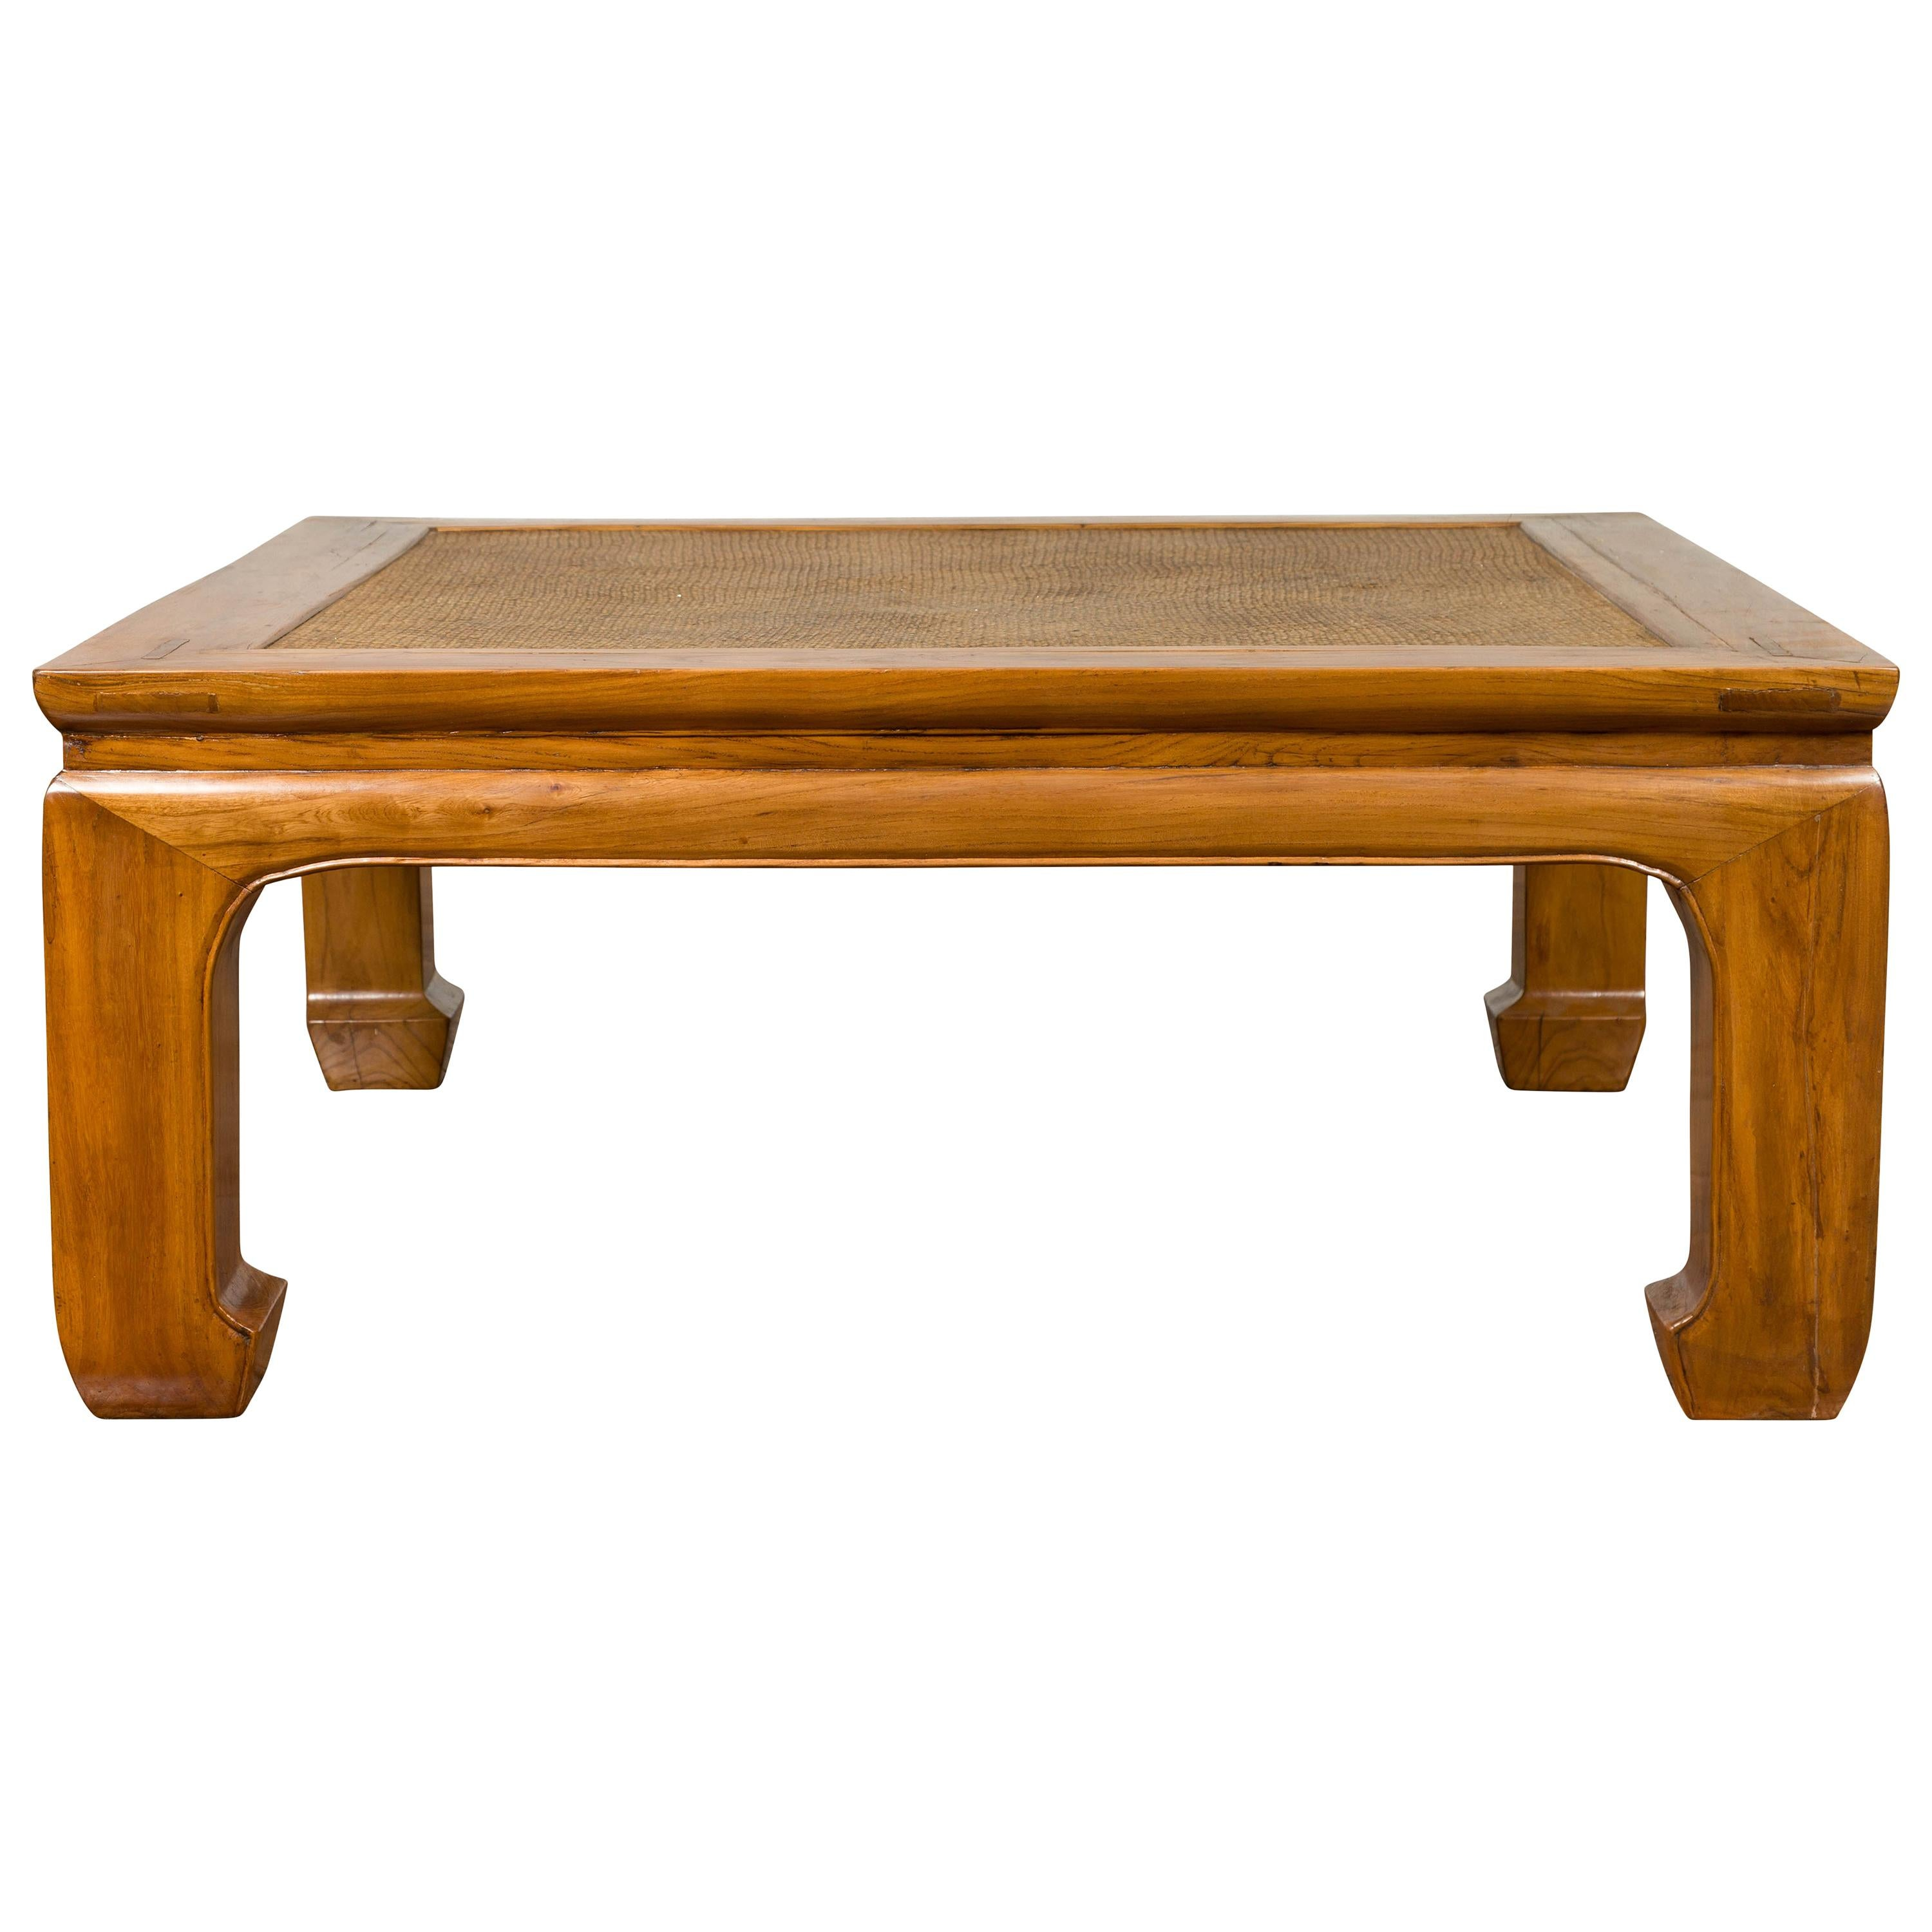 Chinese Ming Style 19th Century Elm Coffee Table with Rattan Inset and Chow Legs